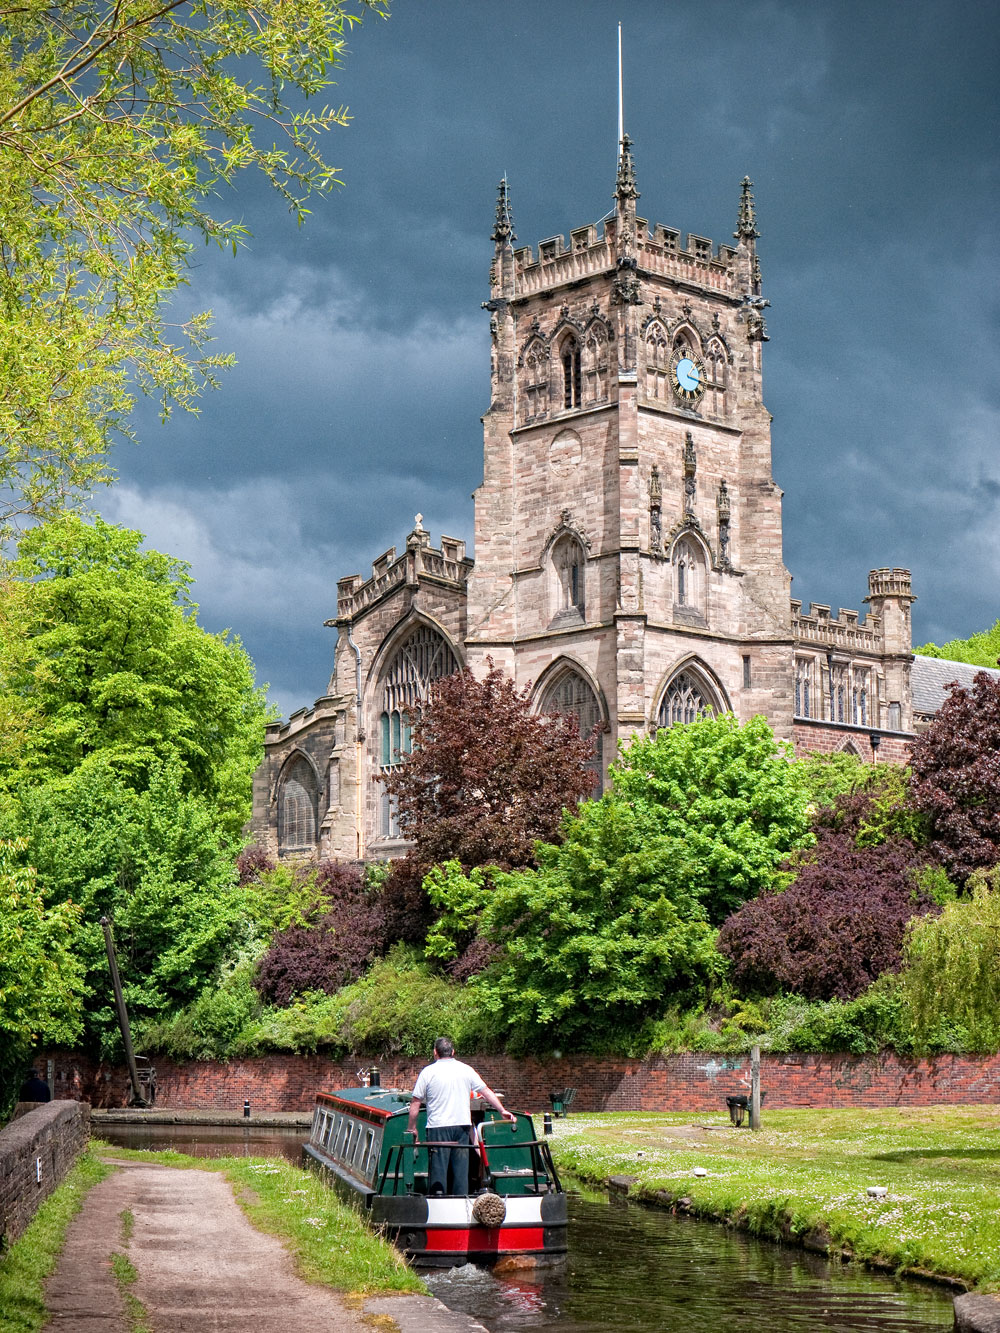 One of Barry's favourite backgrounds, the church in Kidderminster